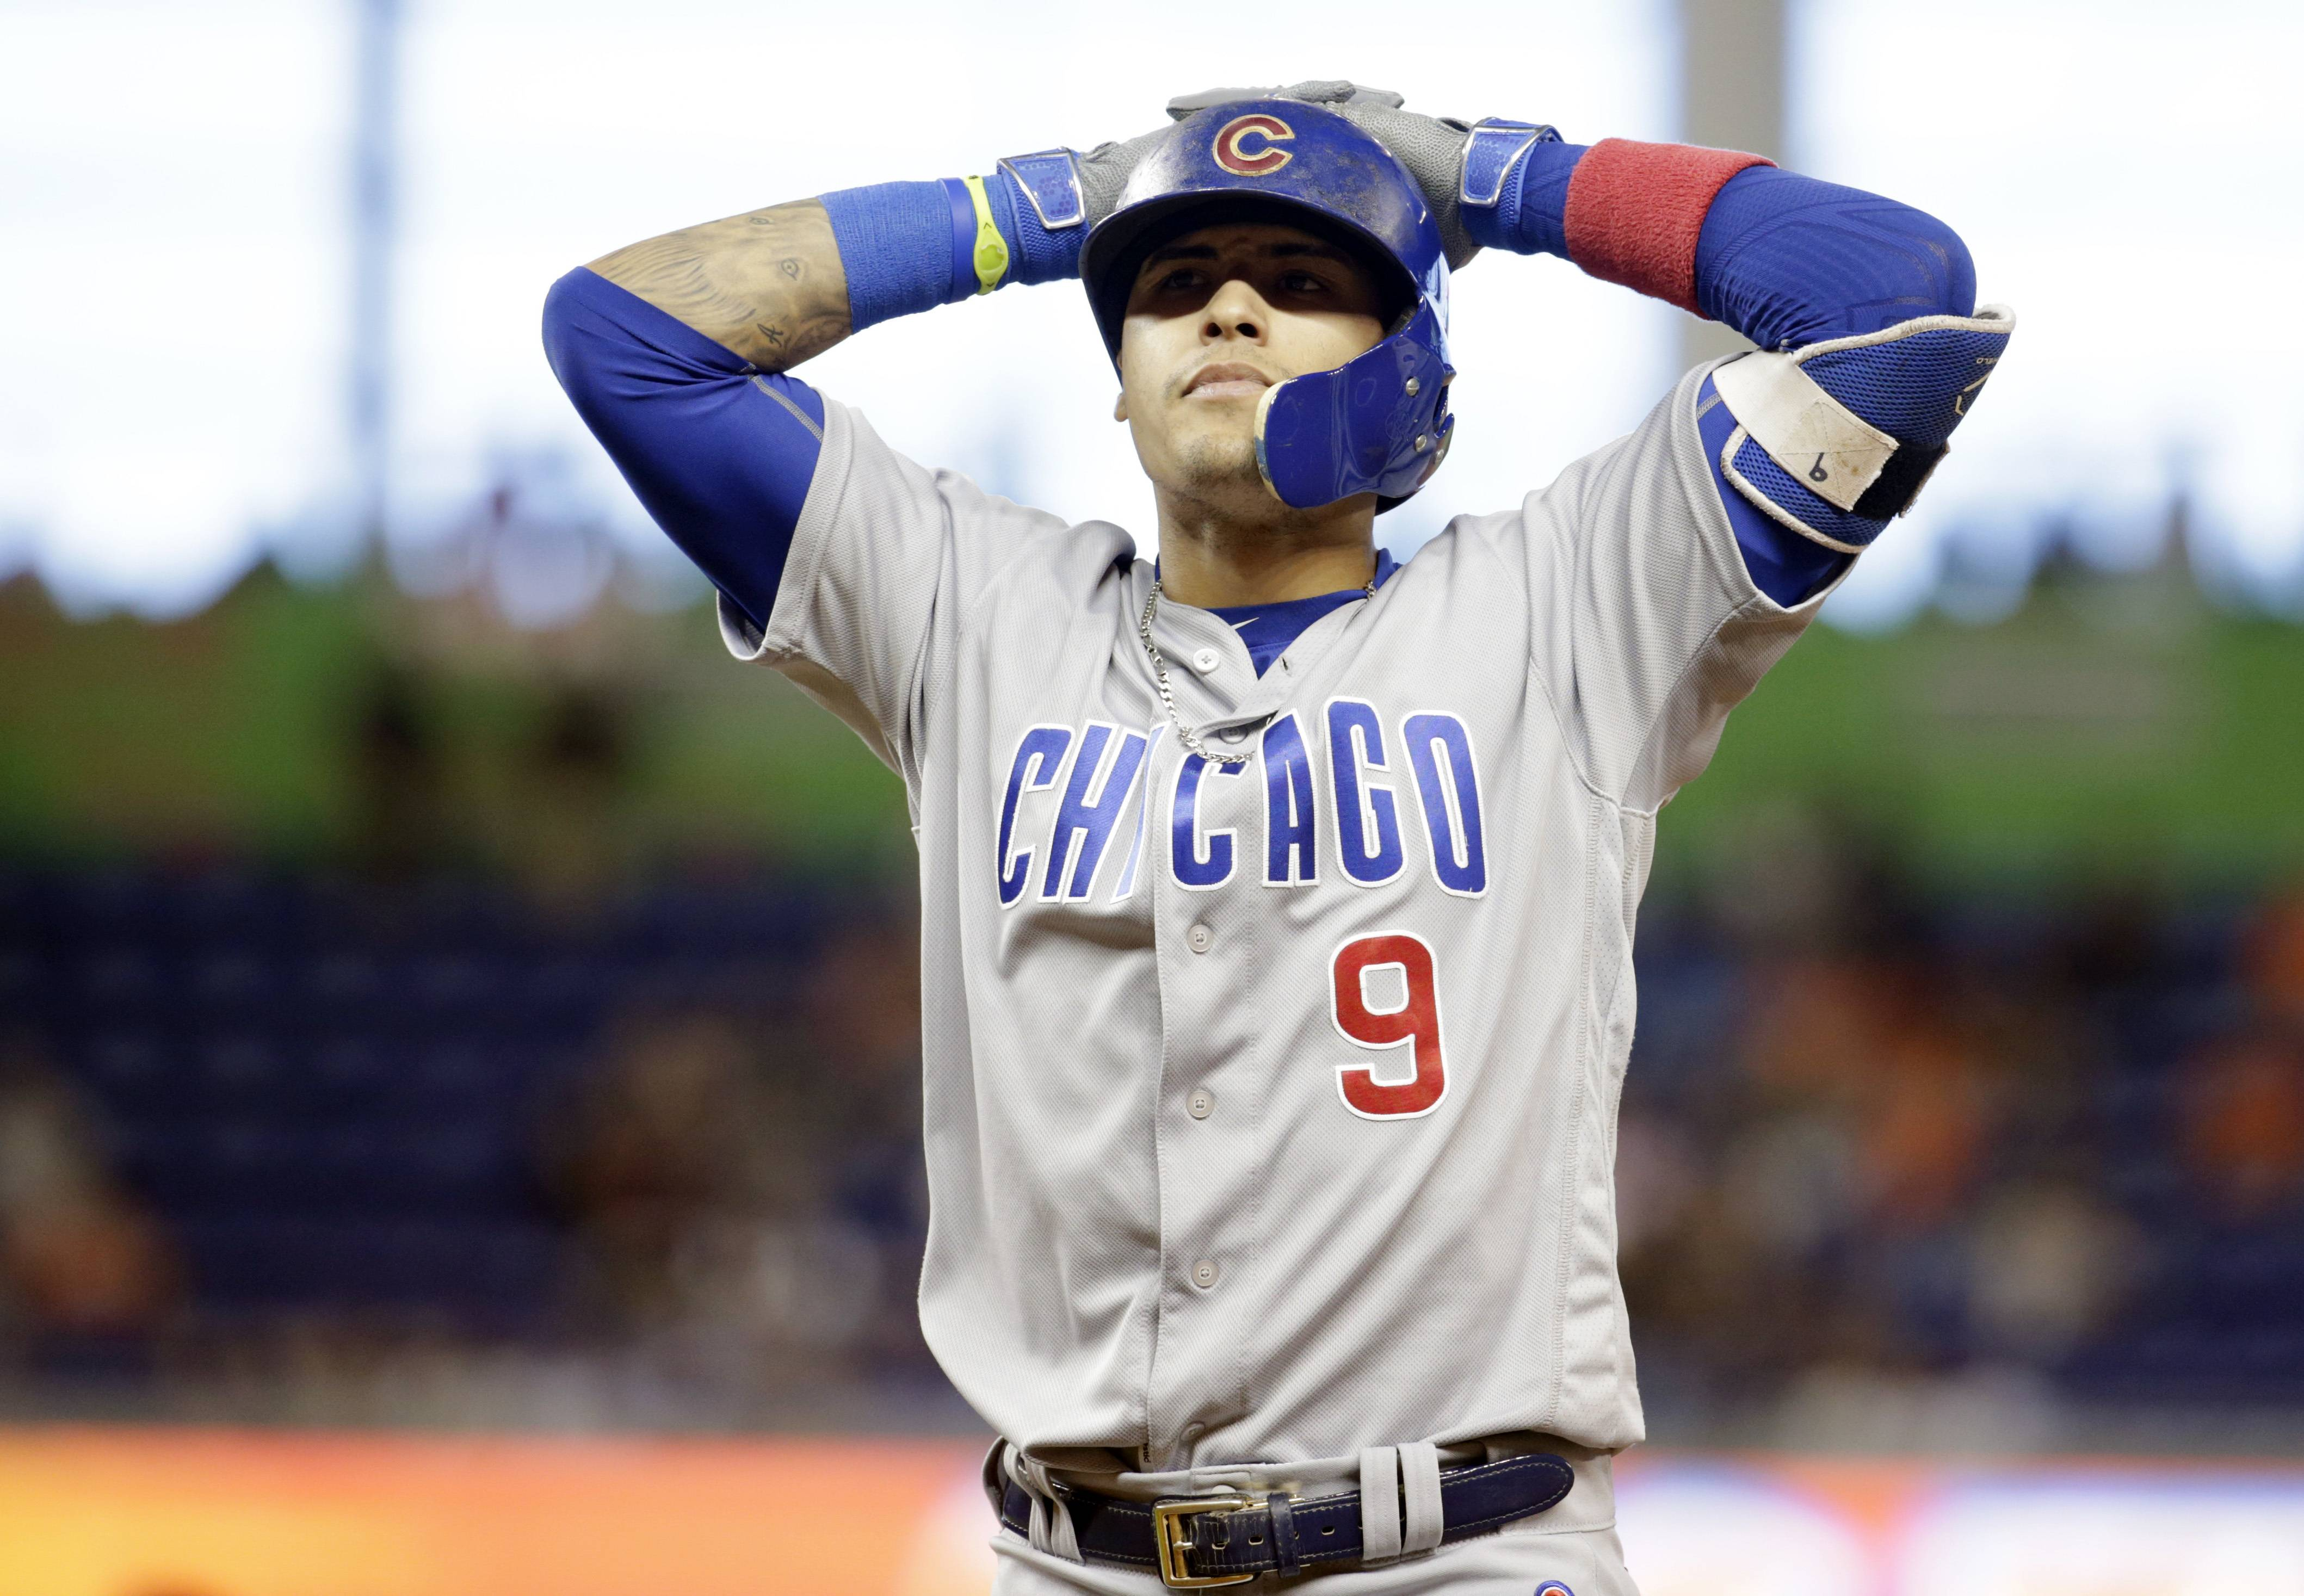 Chicago Cubs' Javier Baez (9) reacts after flying out to Miami Marlins shortstop Adeiny Hechavarria during the ninth inning of a baseball game, Saturday, June 25, 2016, in Miami. The Marlins defeated the Cubs 9-6. (AP Photo/Lynne Sladky)